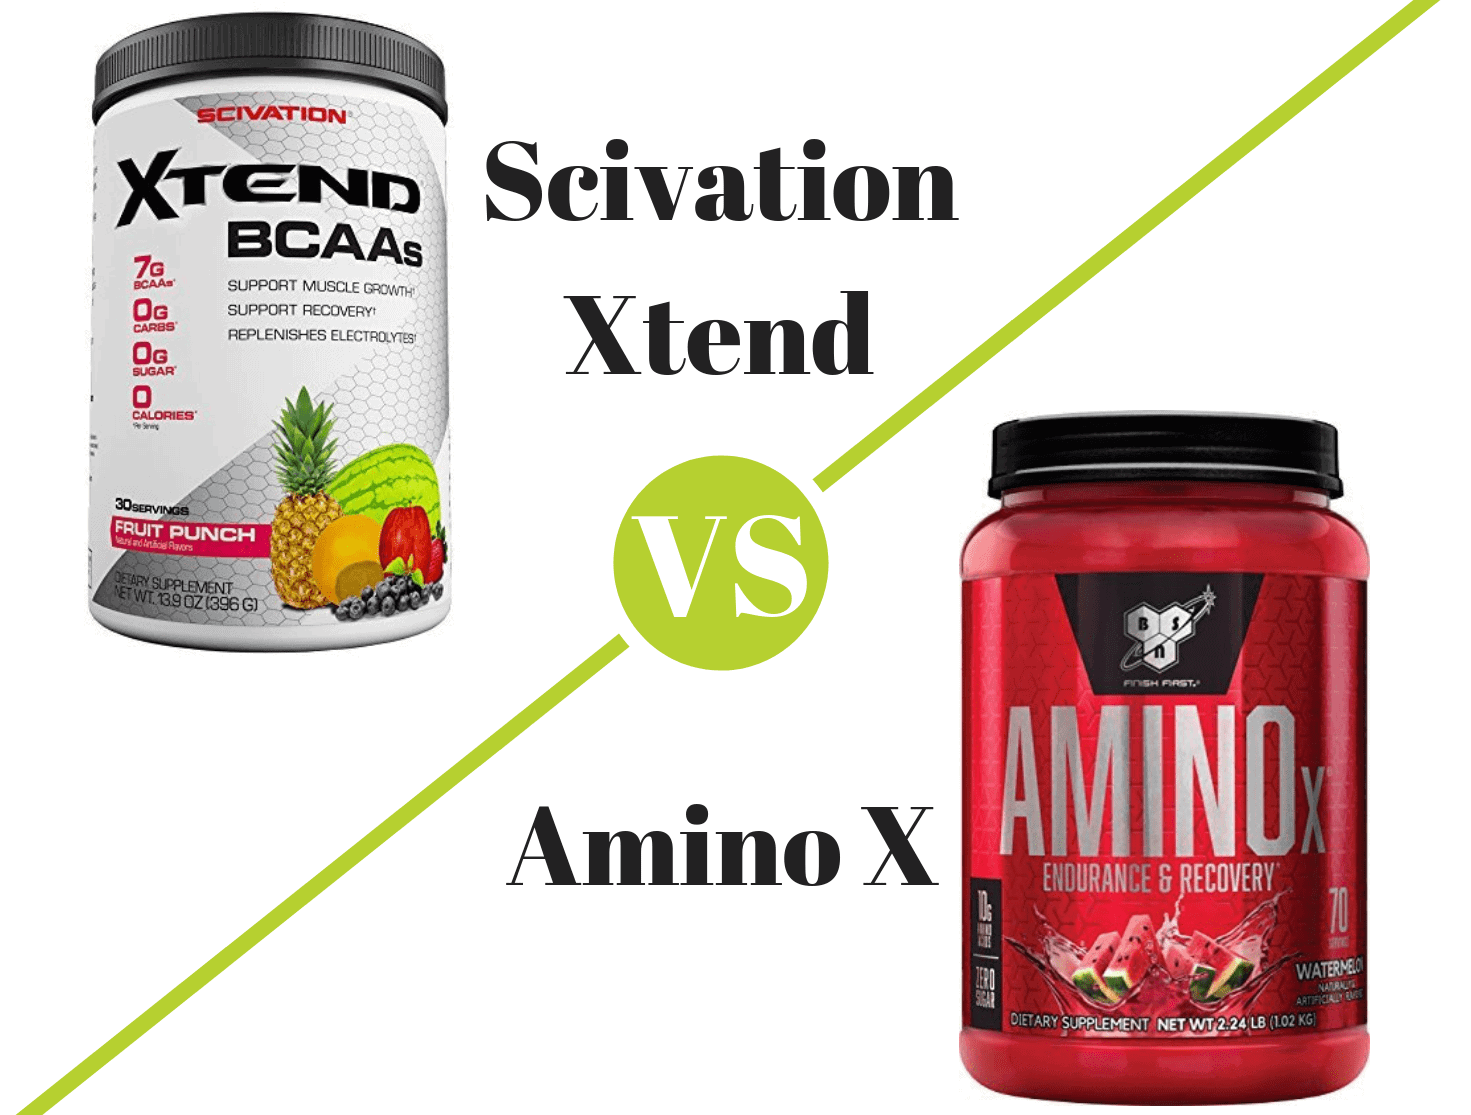 Scivation Xtend vs Amino X